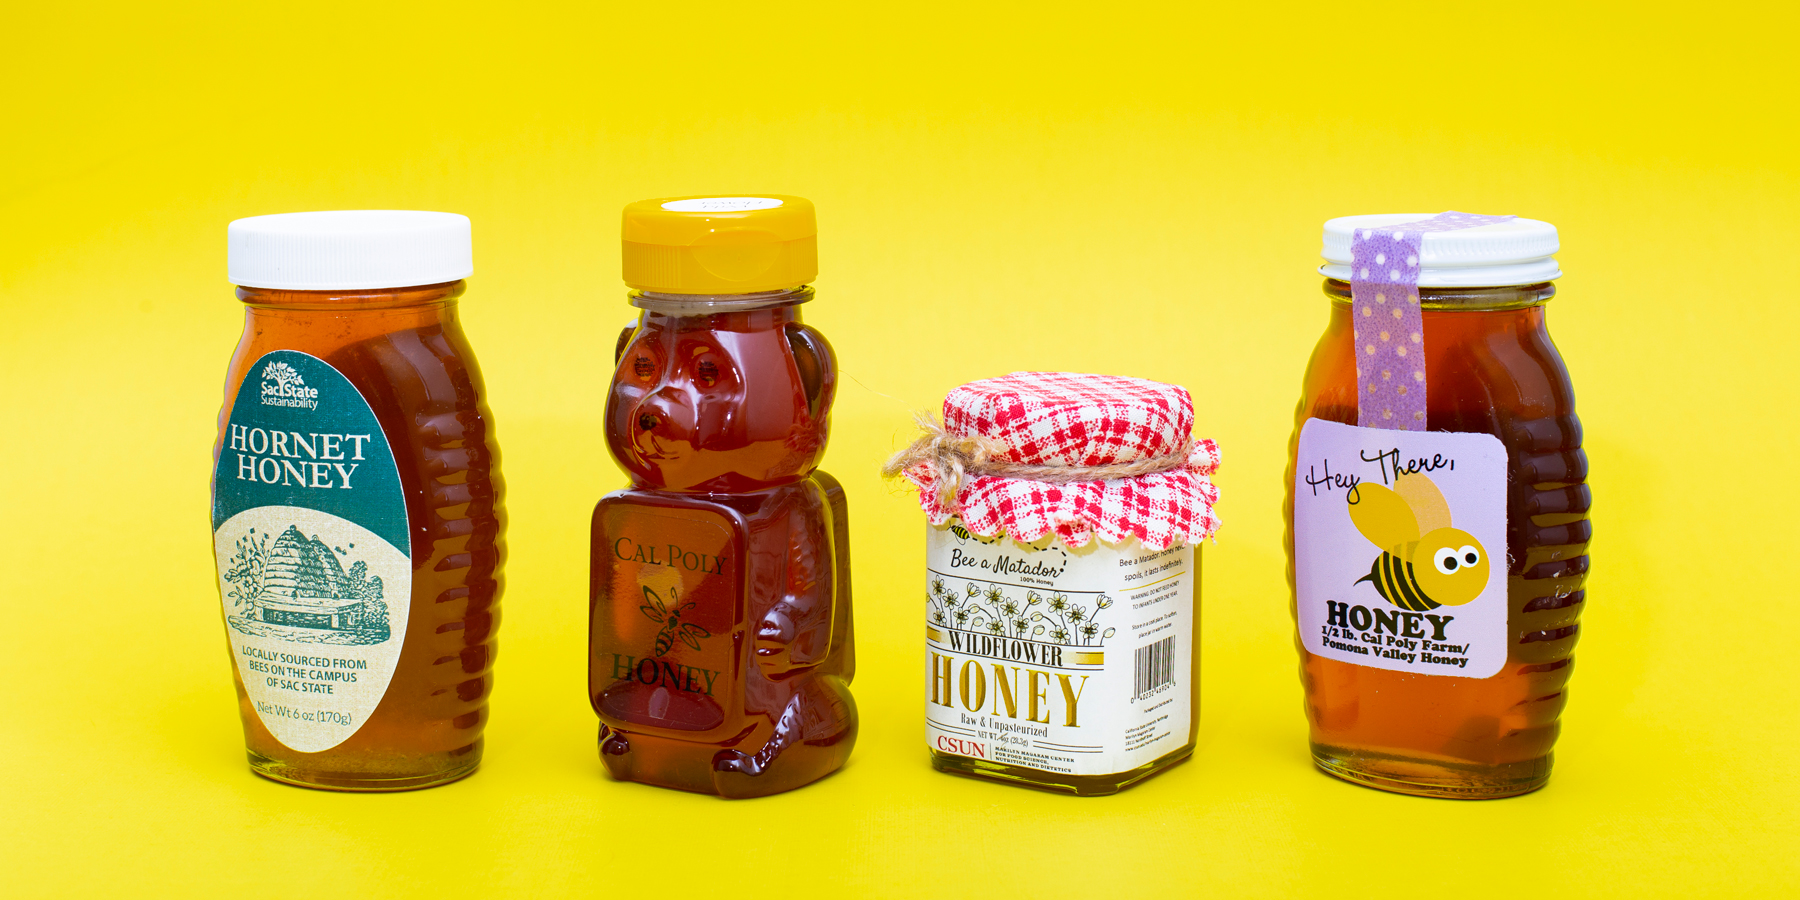 Several CSU campuses make their own honey from on-campus bee hives. From left: Sacramento State's Hornet Honey; Cal Poly San Luis Obispo; CSUN's Bee a Matador Wildflower Honey; and Cal Poly Pomona's Hey There, Honey. (Not pictured: CSU Channel Islands)